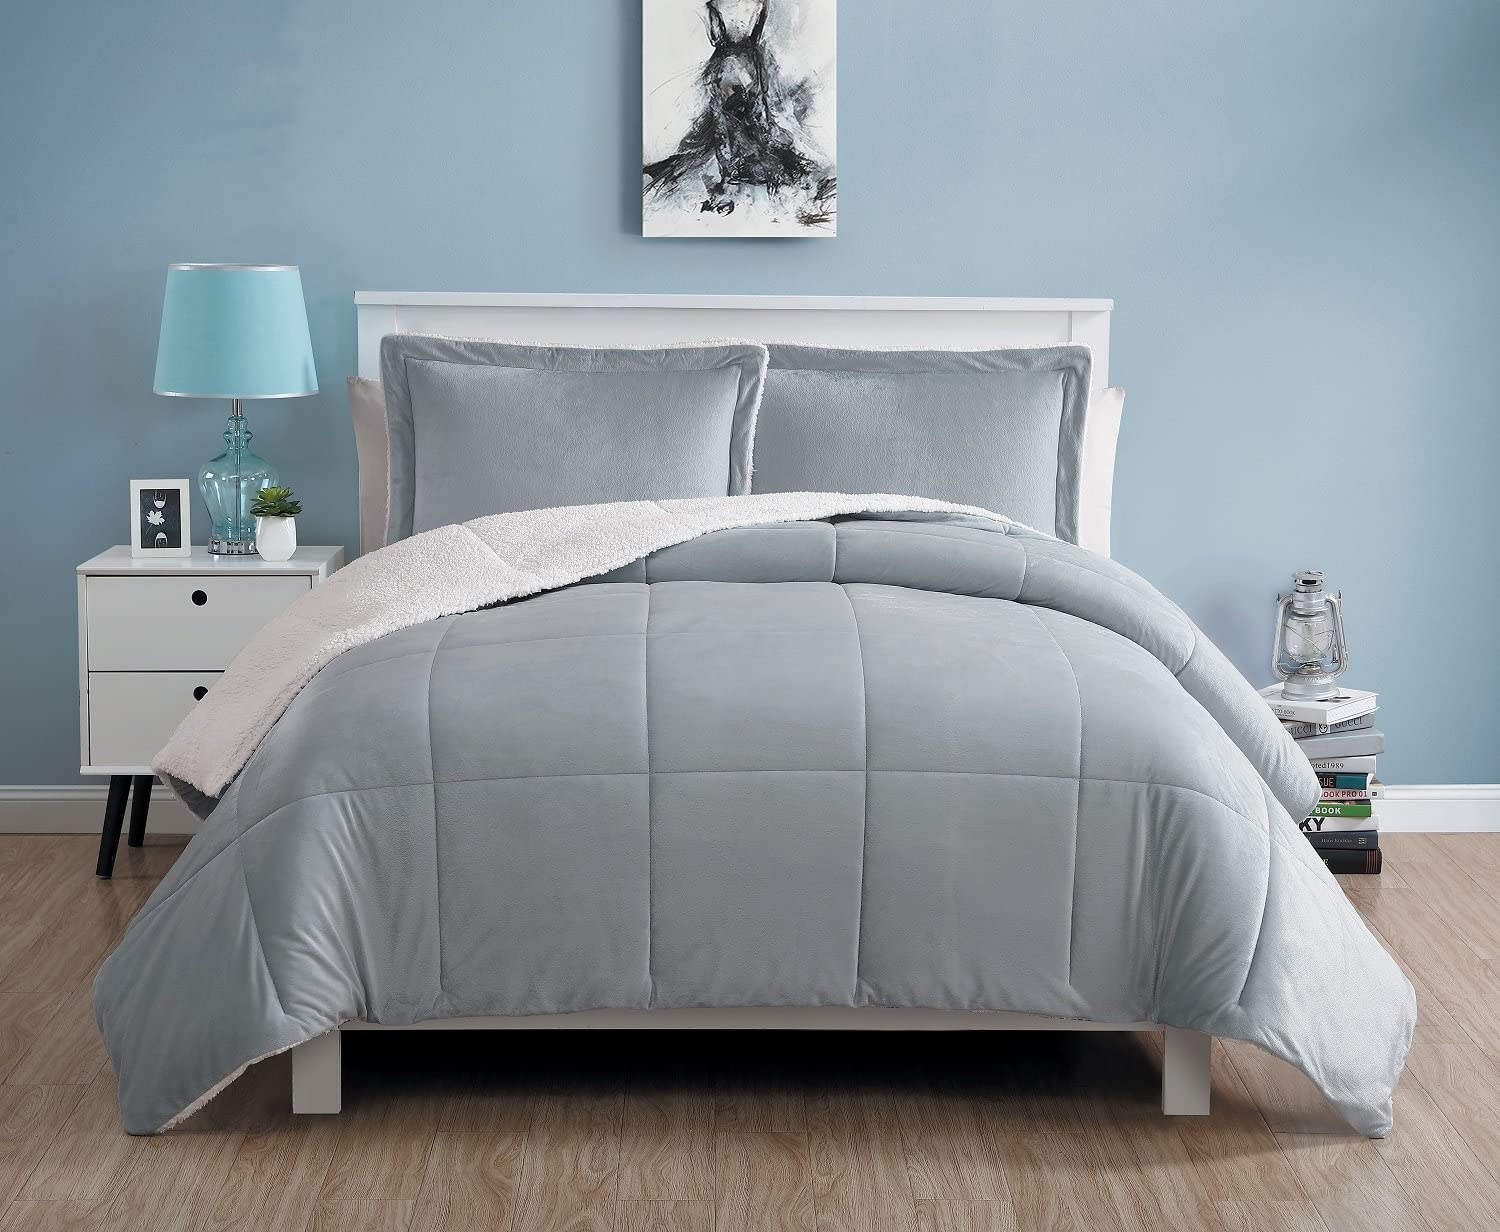 VCNY Home Micro Mink Reversible 3-Piece Warm Sherpa Comforter Set, King, Grey